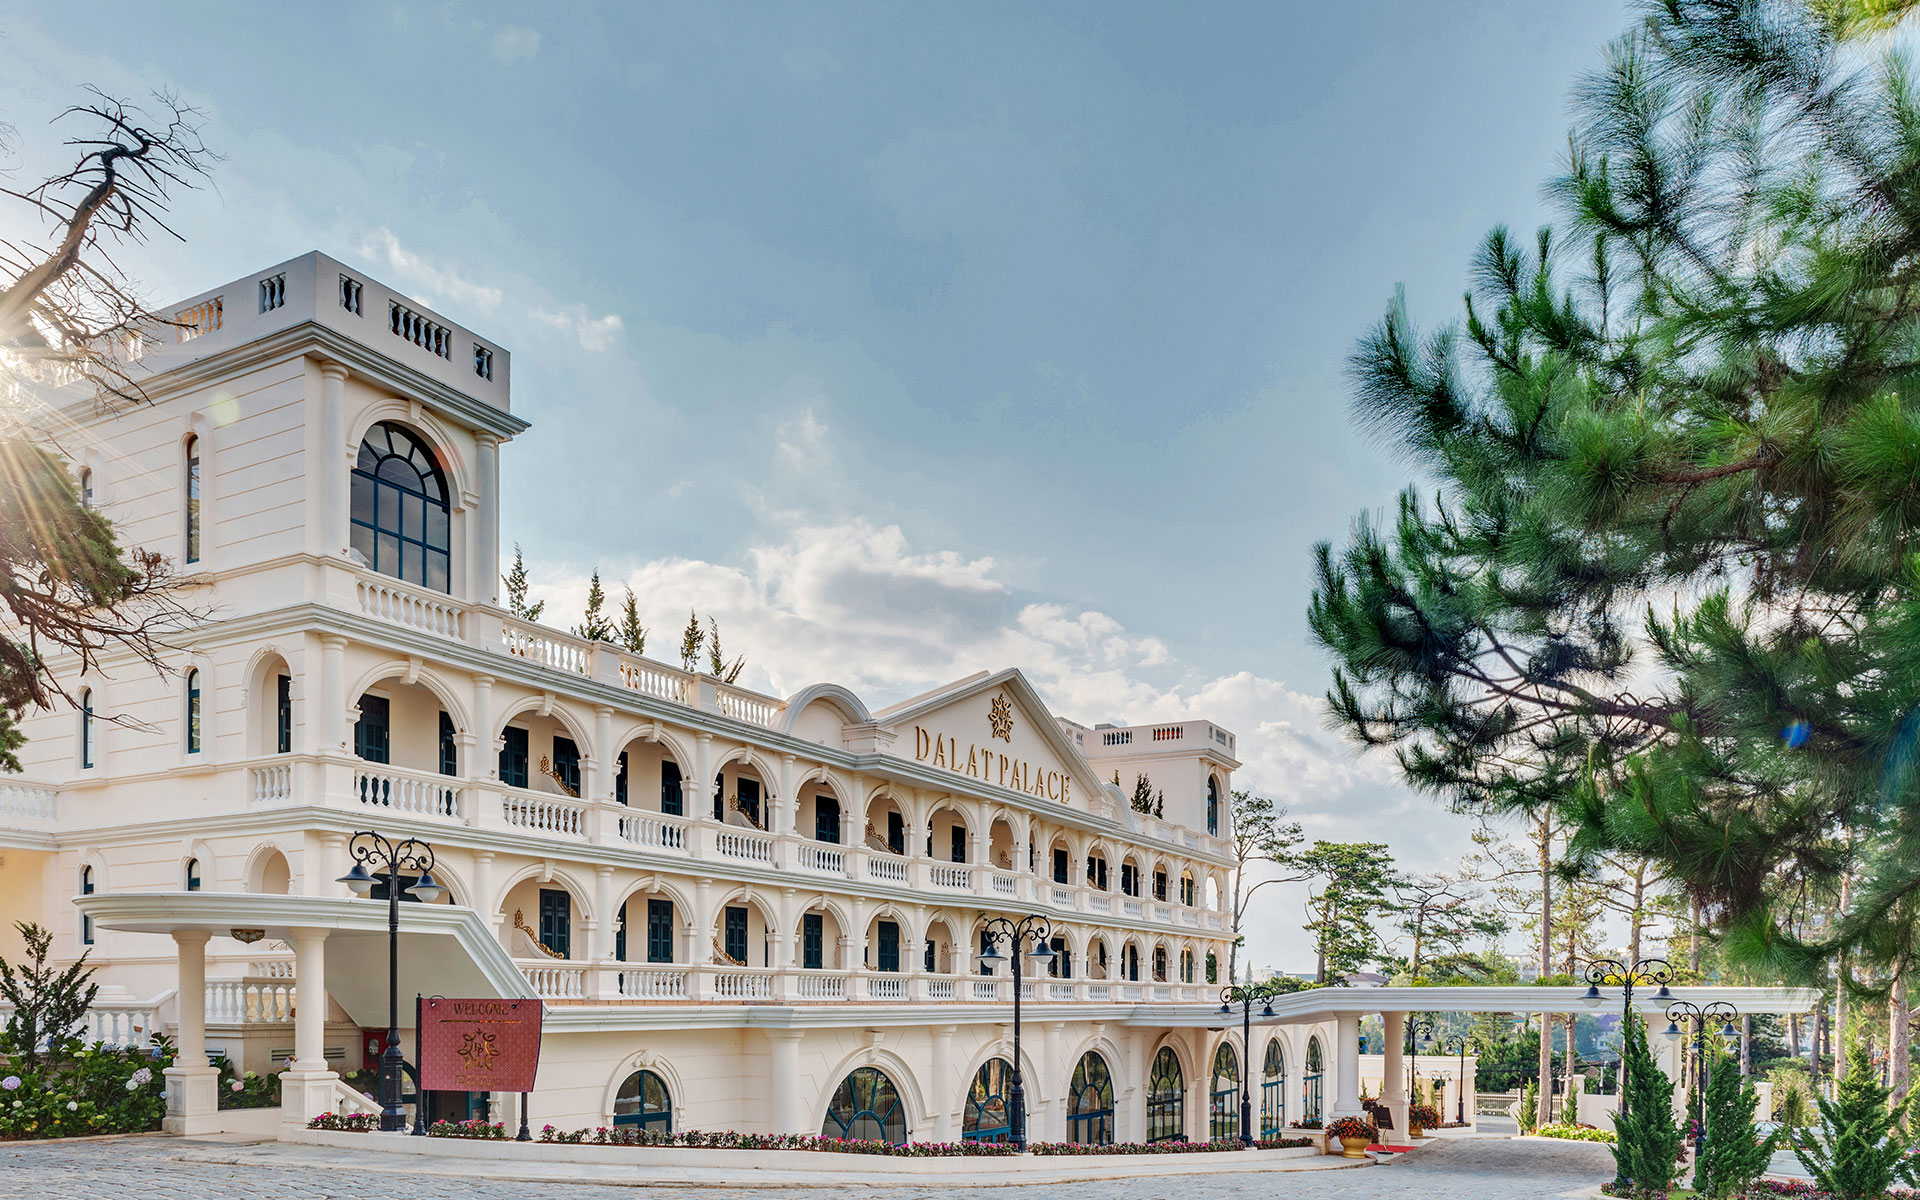 Dalat Palace offers luxurious elegance, gracious service and French colonial charm